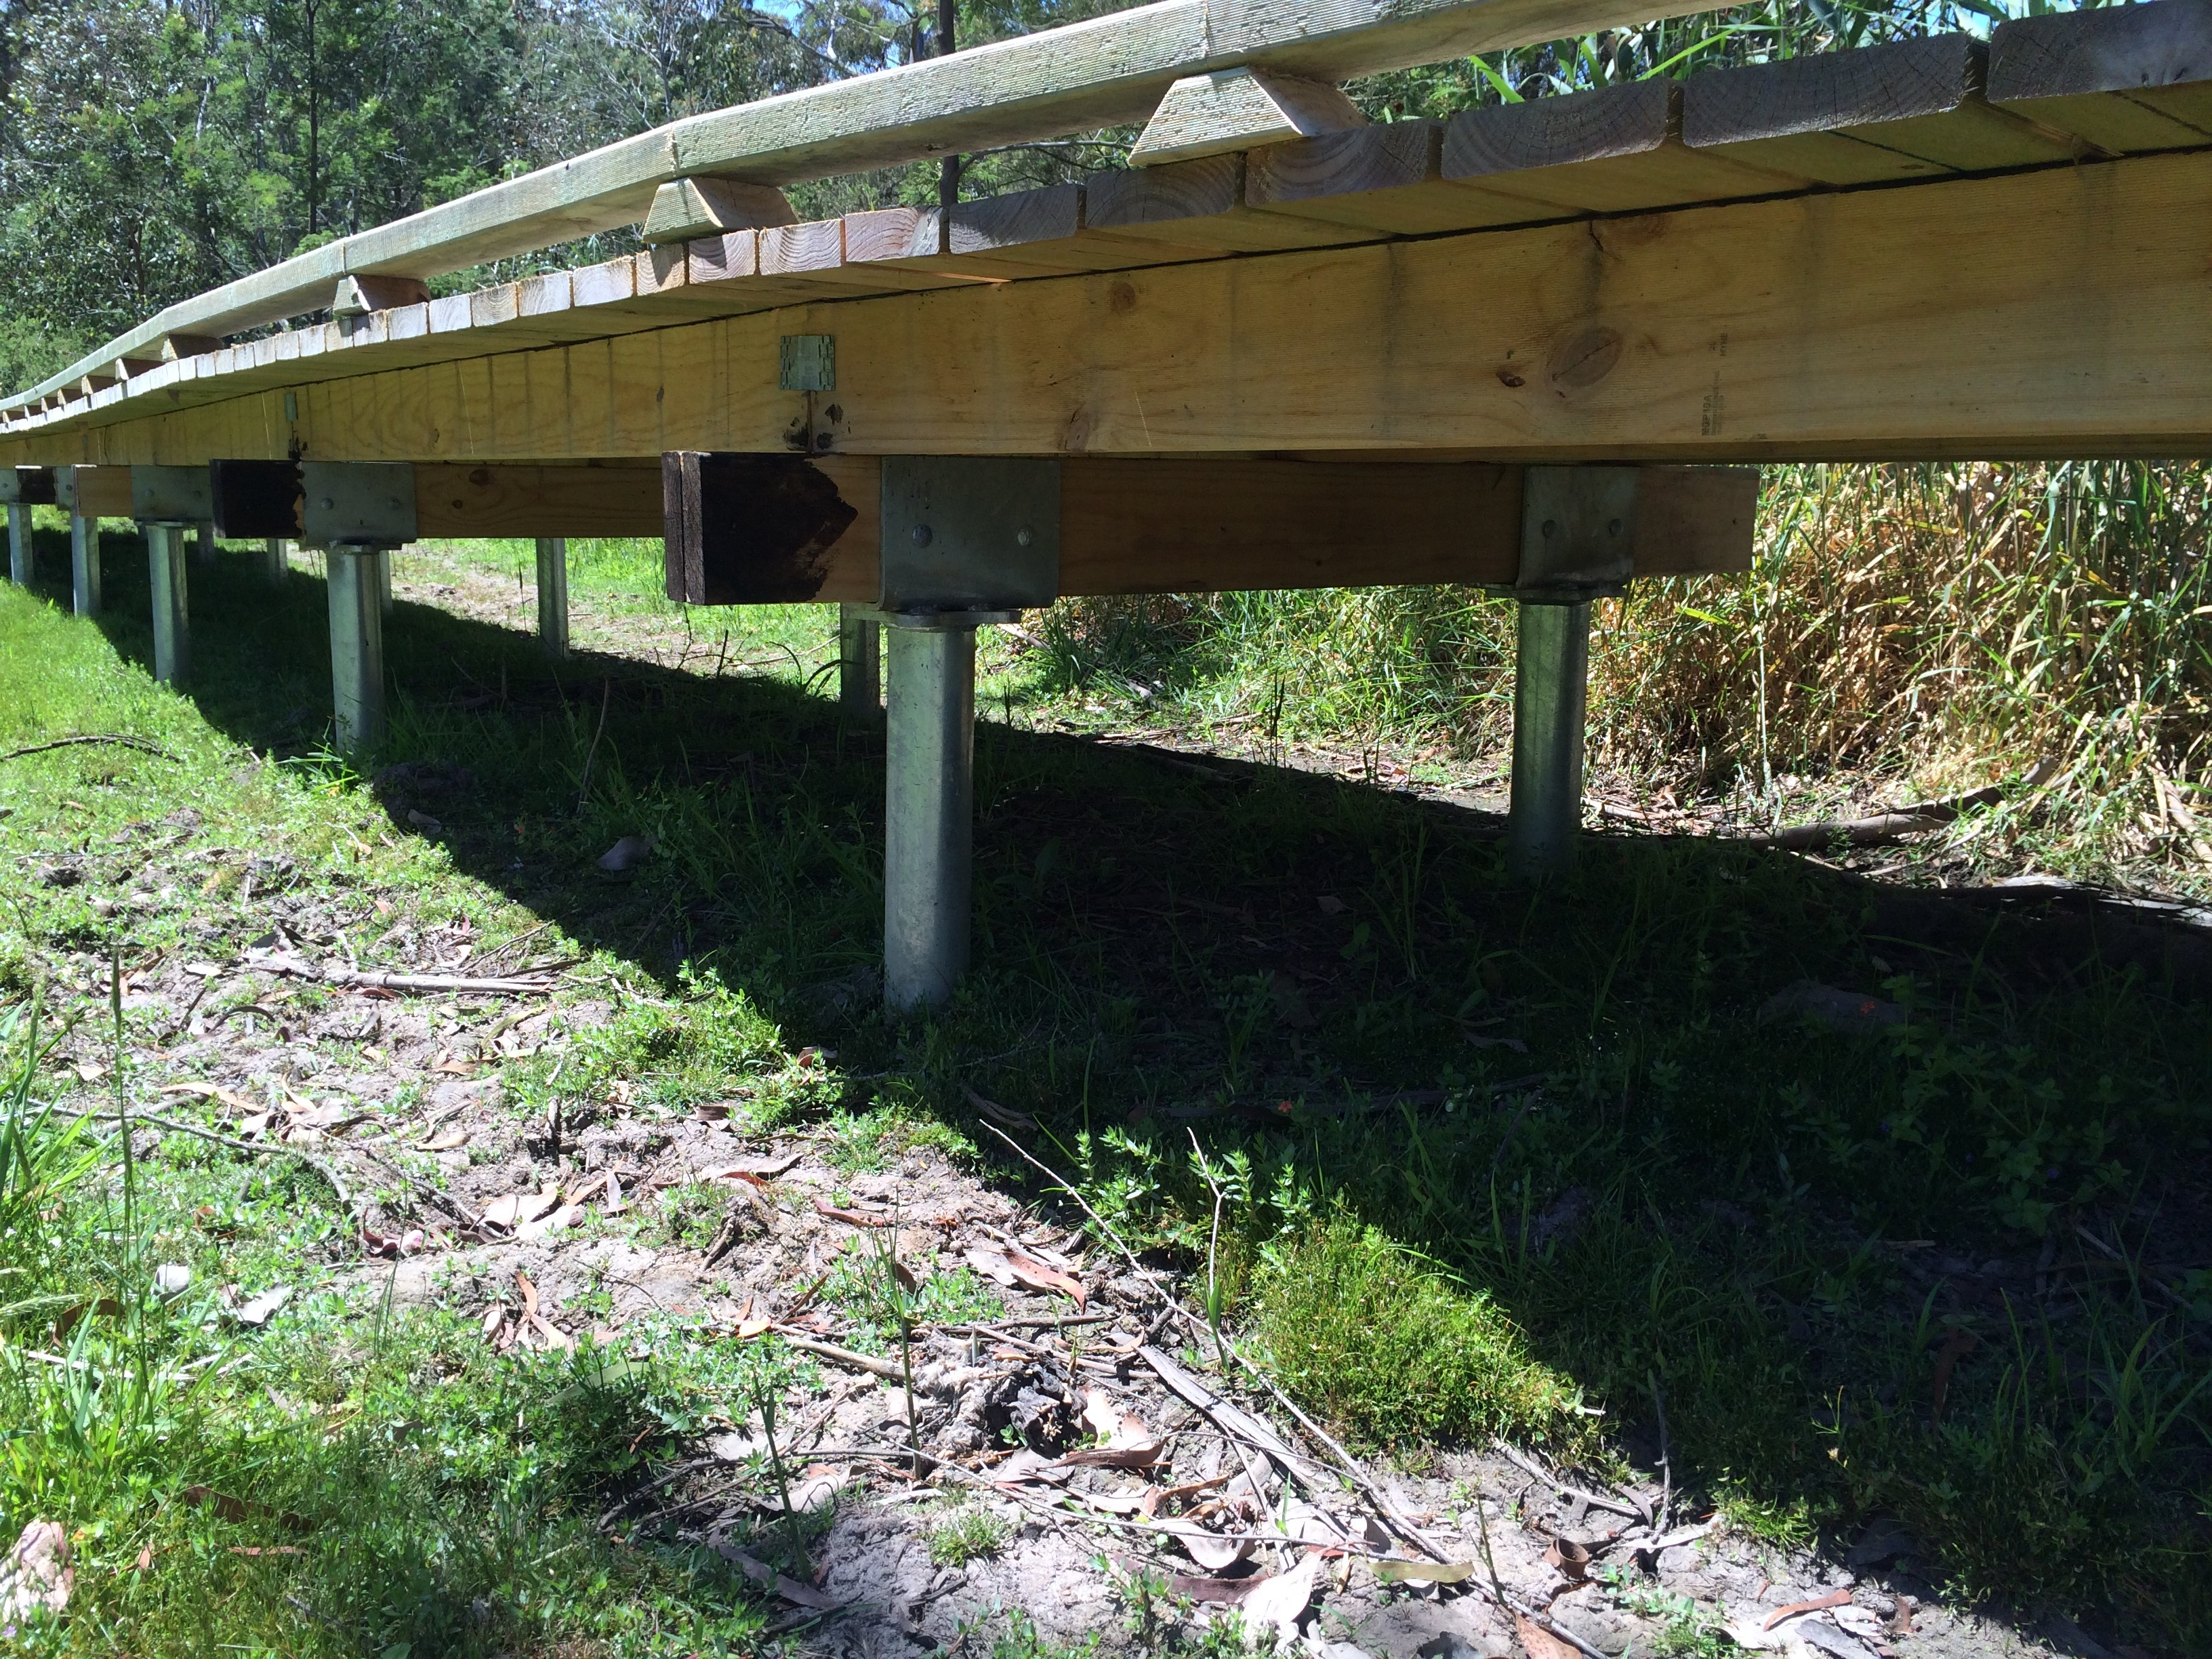 The Briars Estuary Boardwalk Mt Martha 1. Screw Piles used to support boardwalk through wet lands